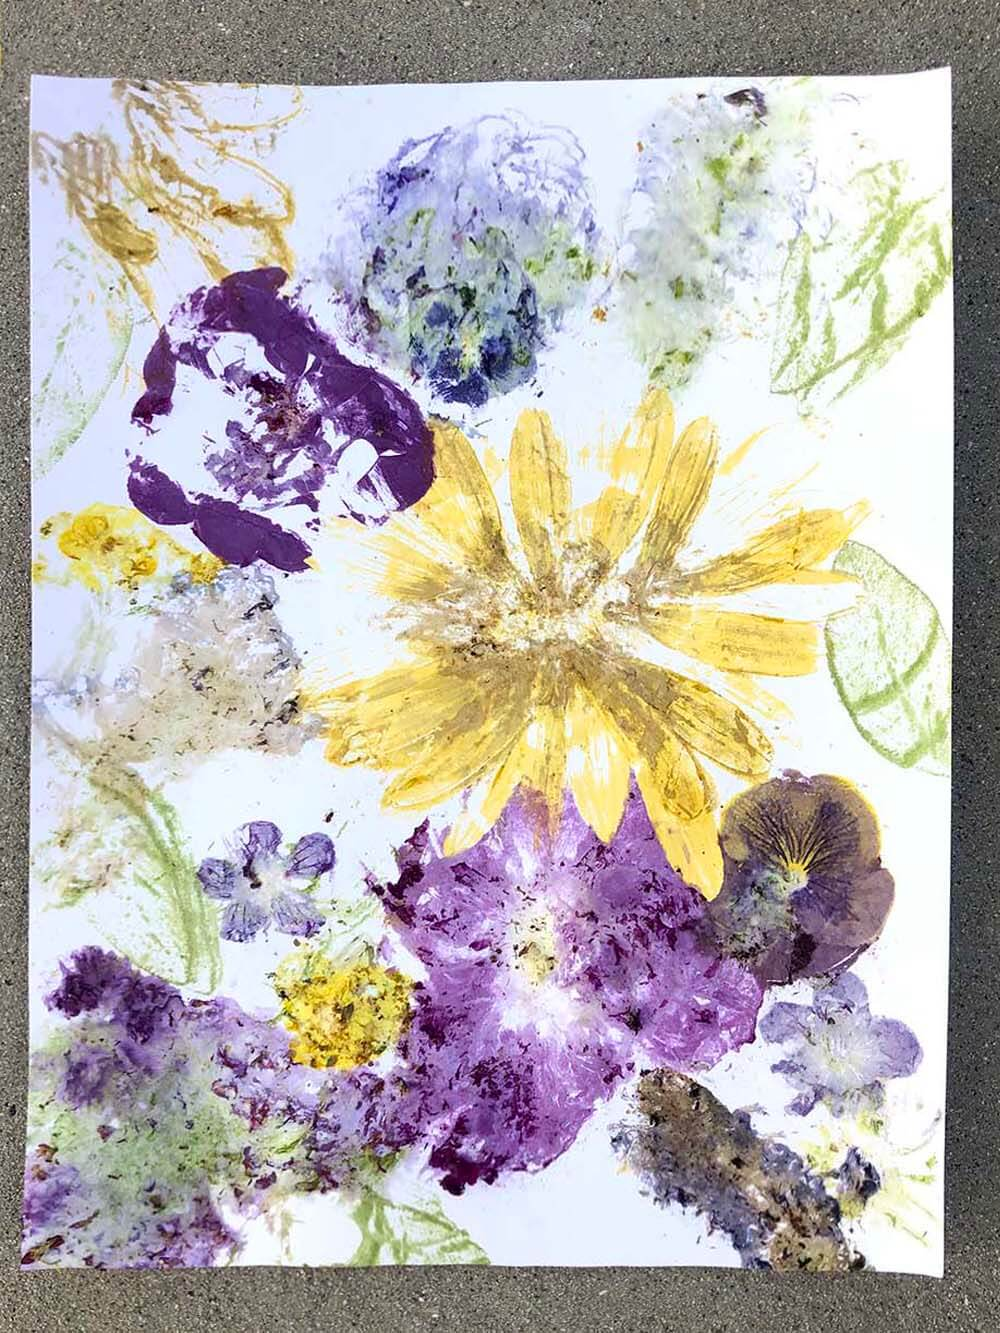 Finished flower print created by hammered nature art